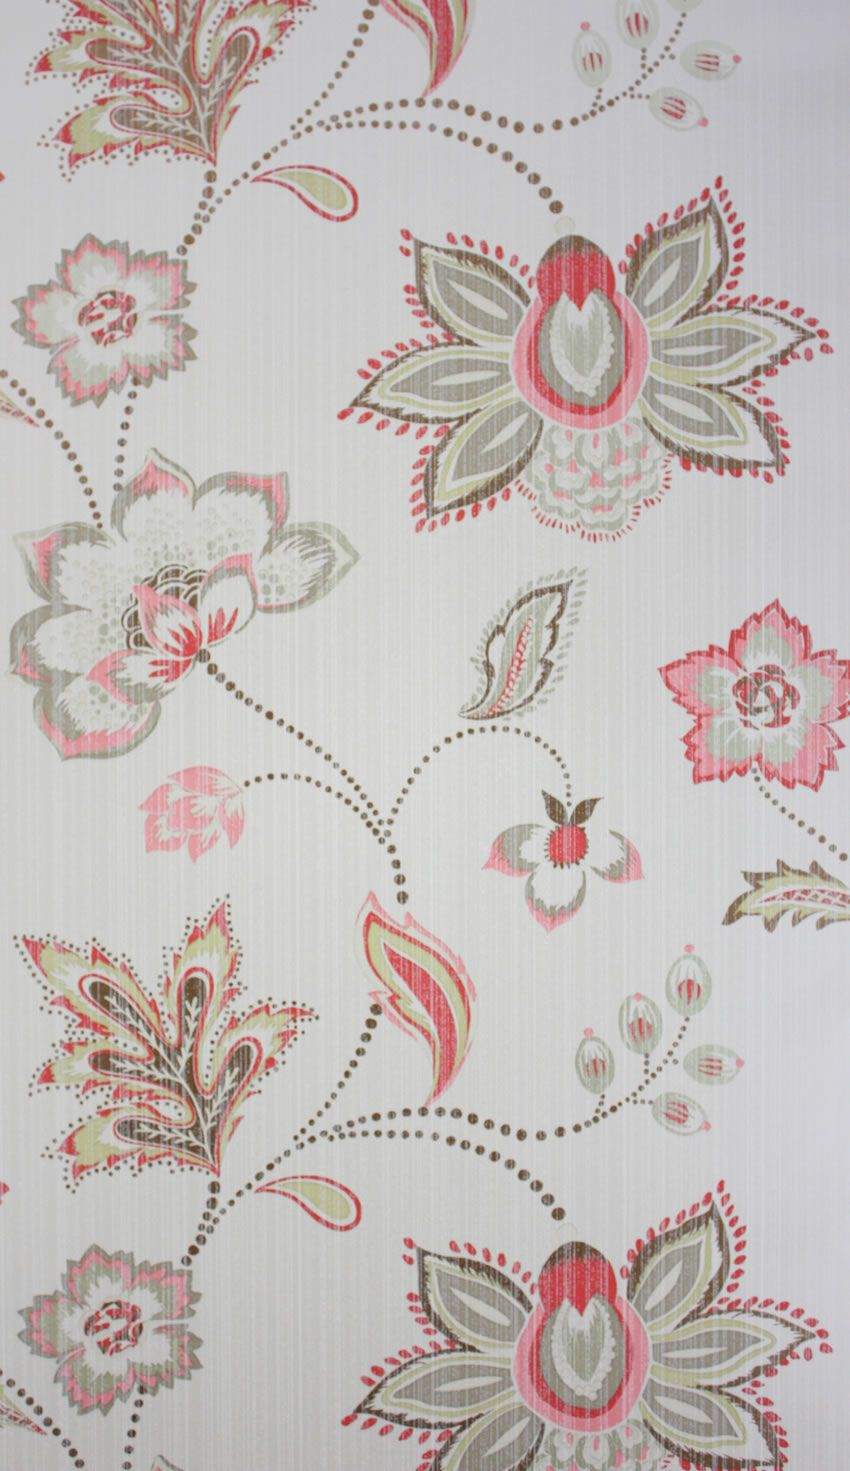 Sample Aubree Wallpaper in Red and Ivory from the Giverny Collection by Nina Campbell